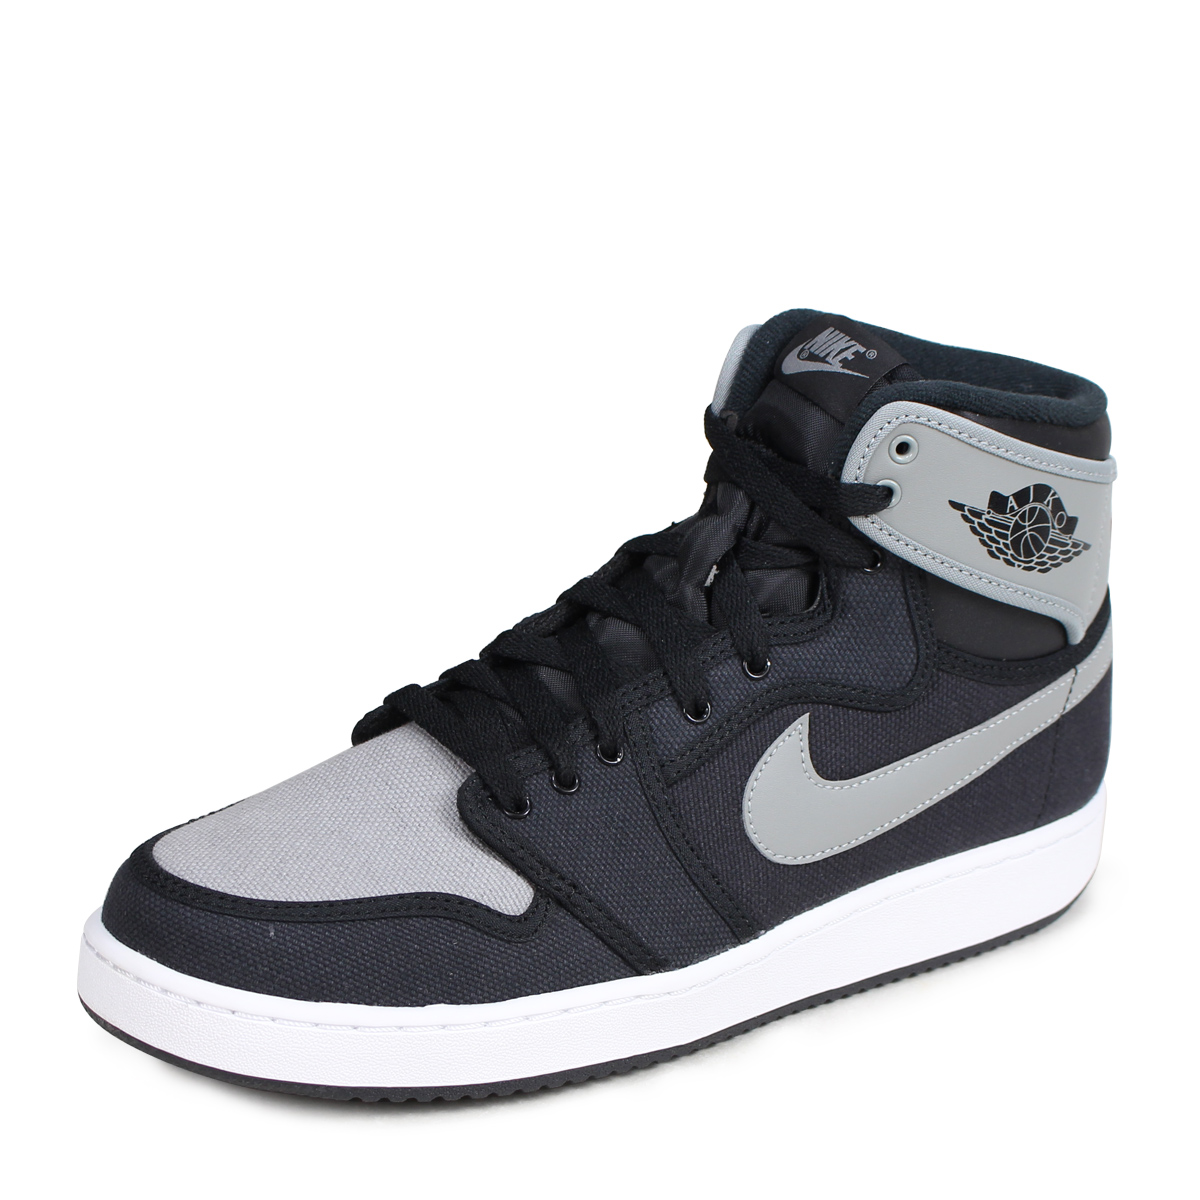 promo code da156 92b06 Nike NIKE Air Jordan sneakers AIR JORDAN 1 RETRO KO HI OG Air Jordan 1  retro Hi 638471-003 men's shoes black grey